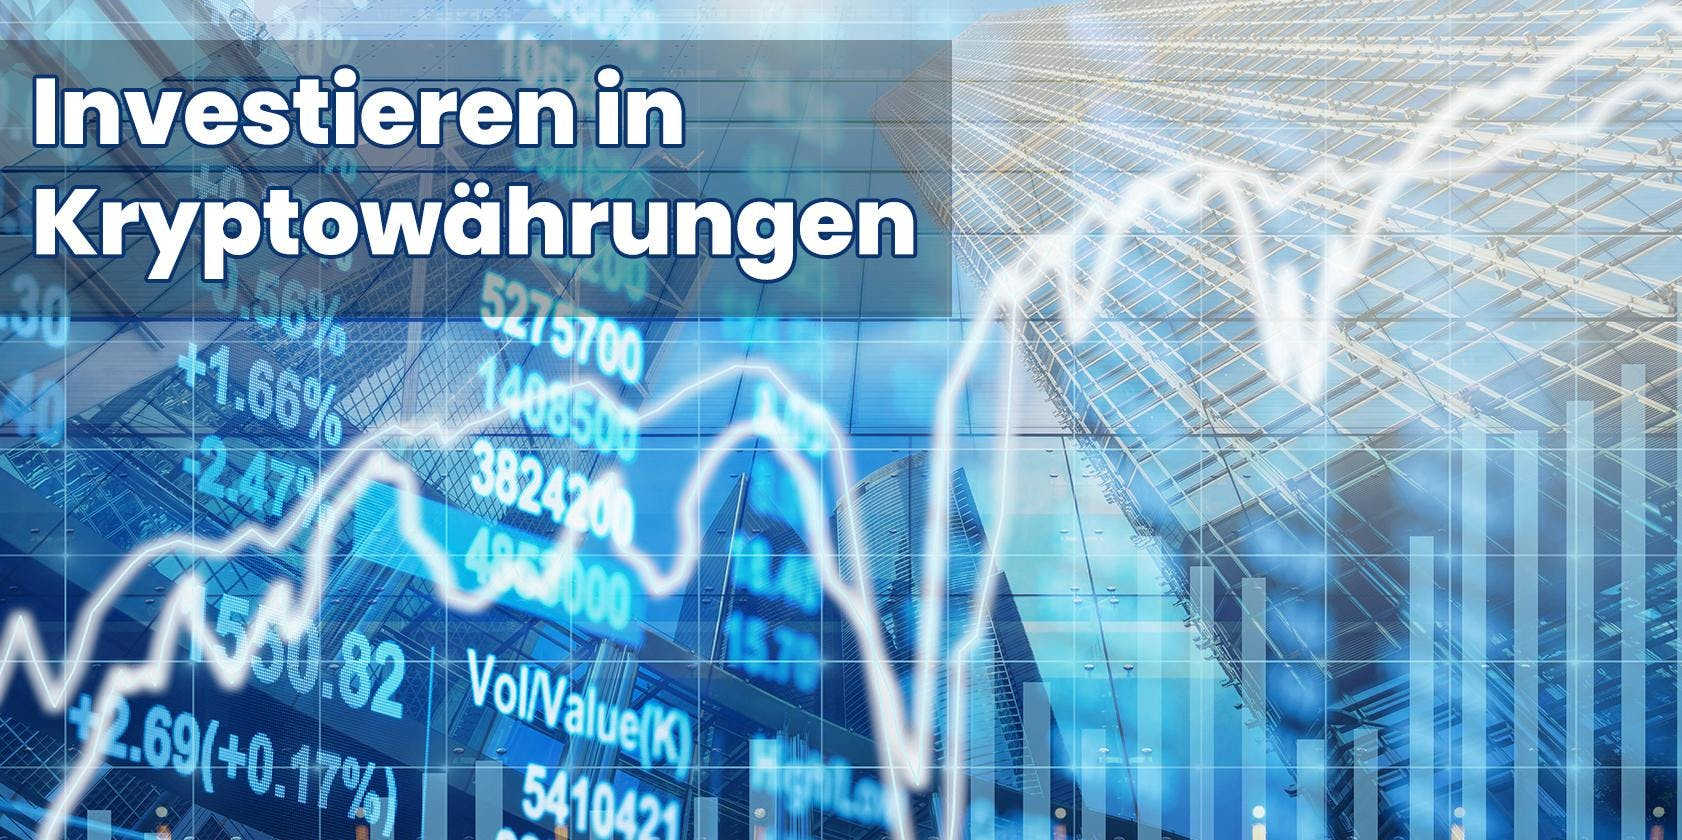 Institutionelles Investieren in Kryptowährung